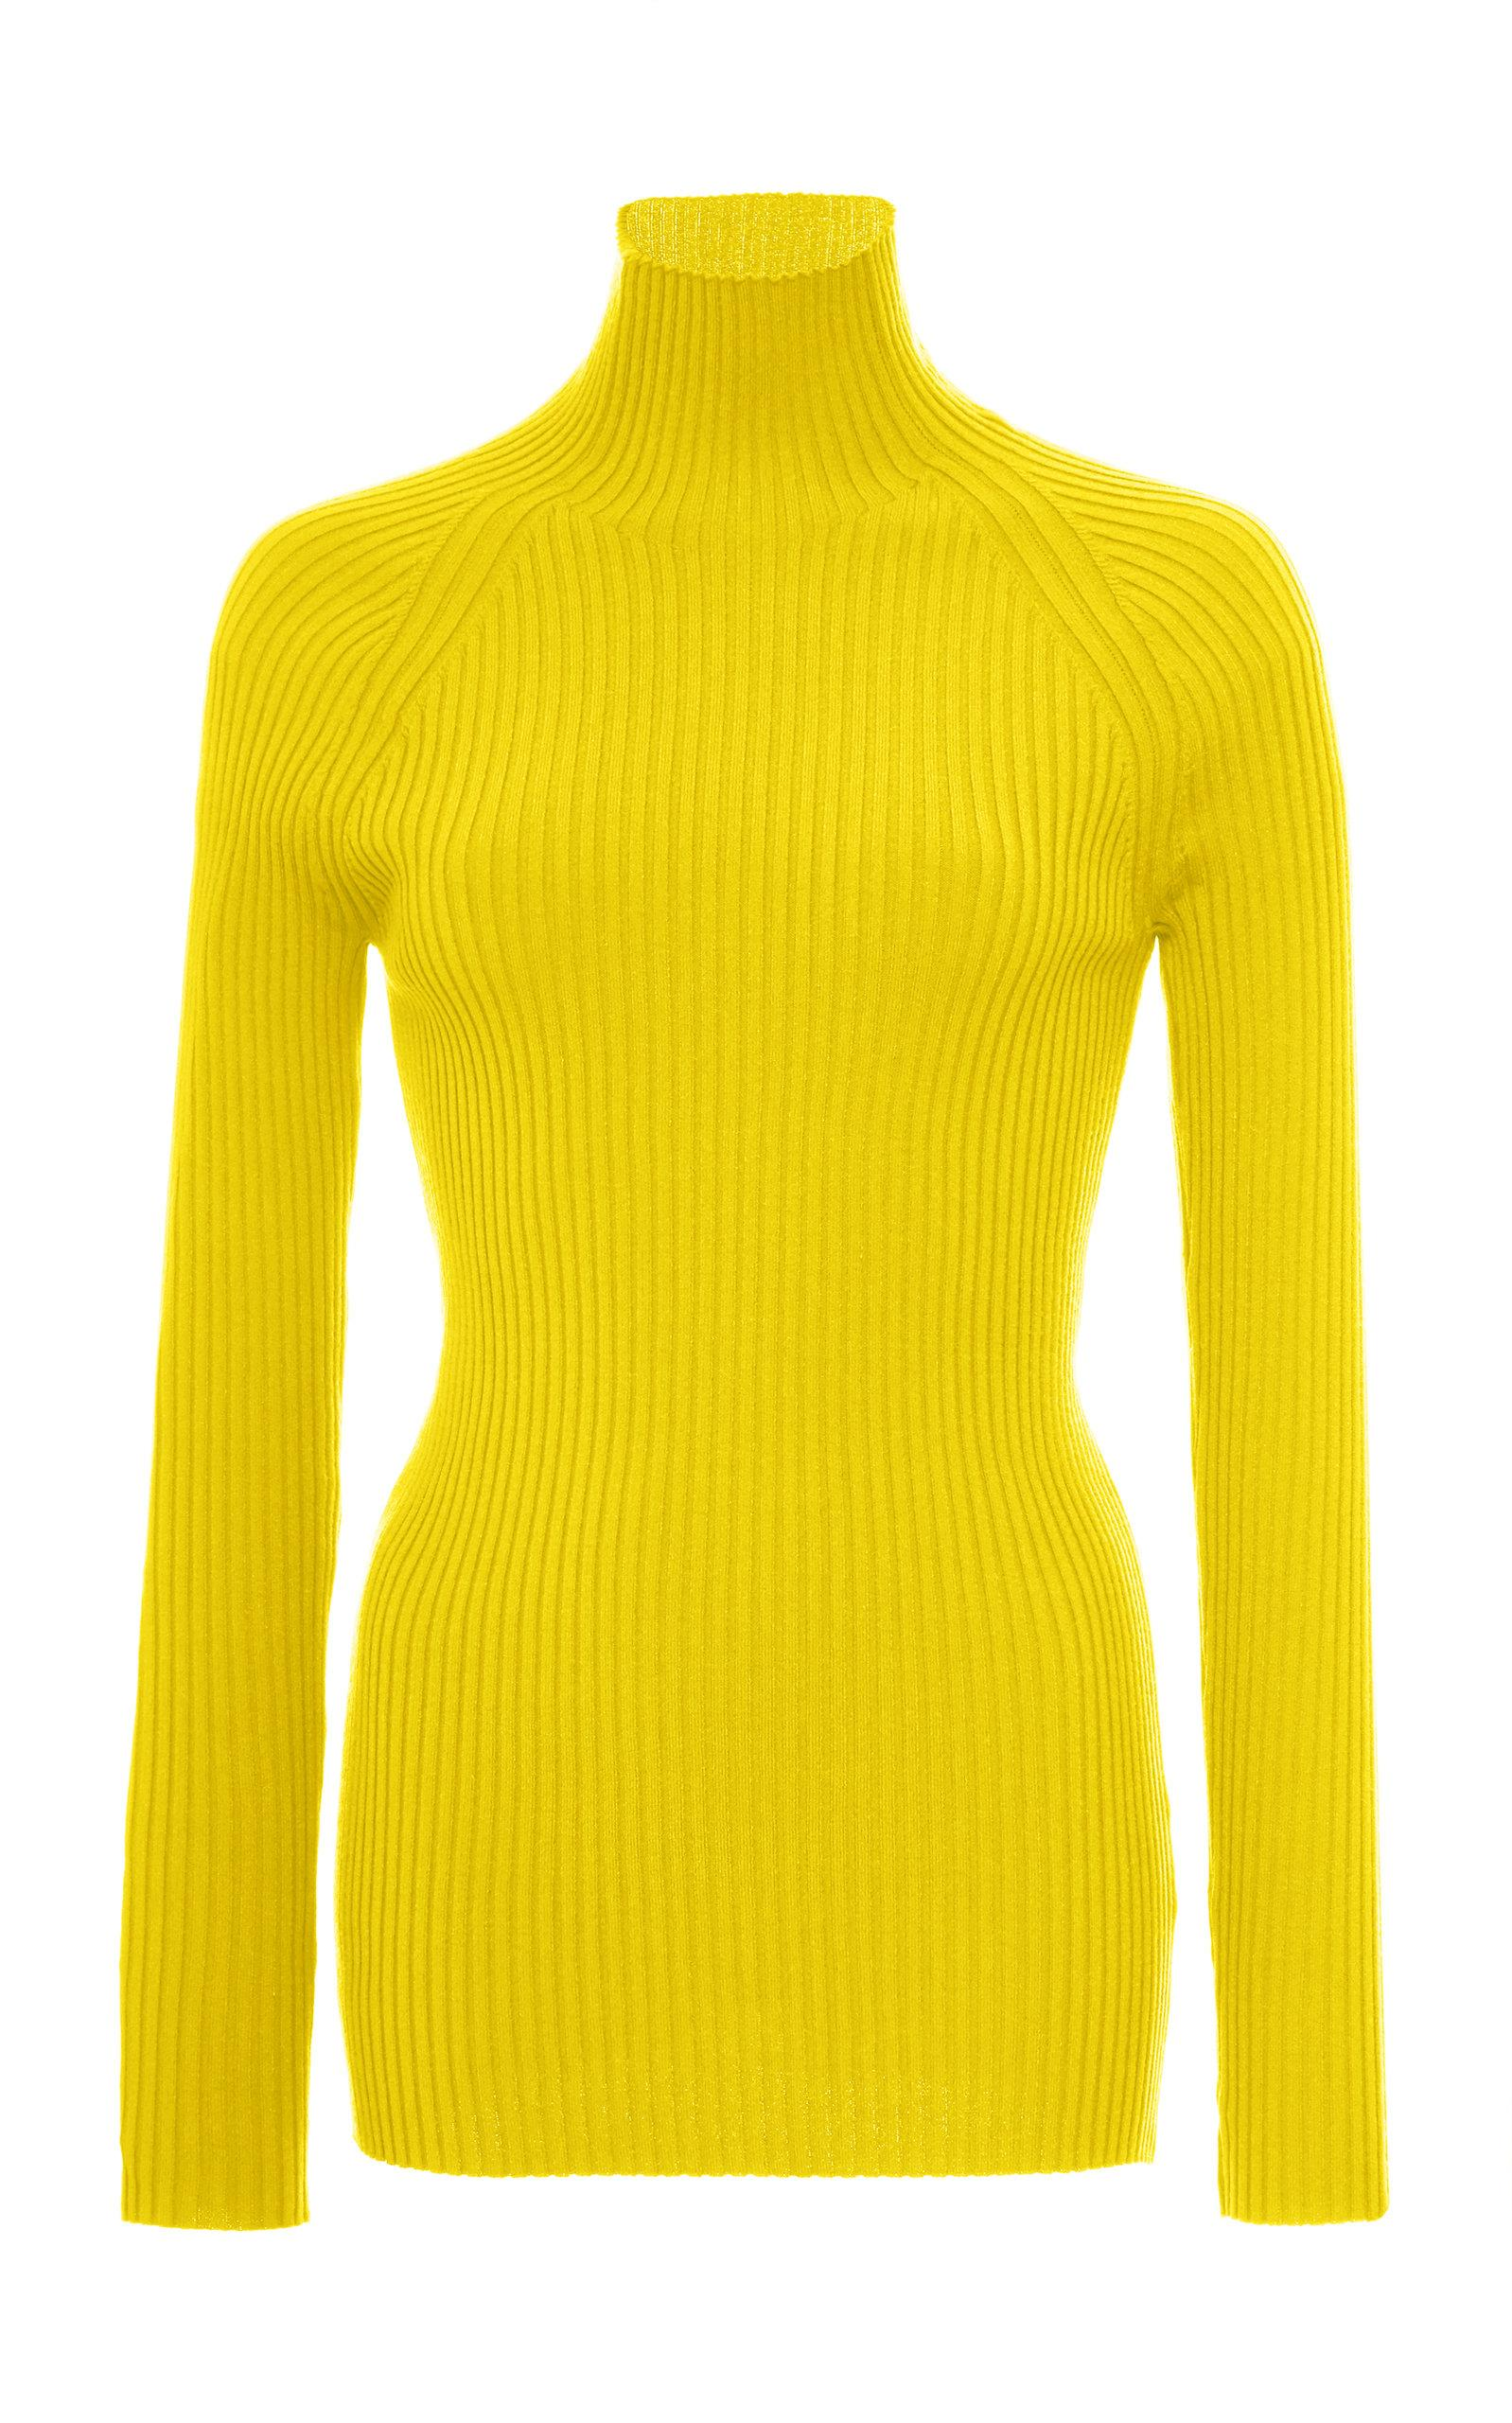 Pepa Pombo Euston Striped Turtleneck In Green